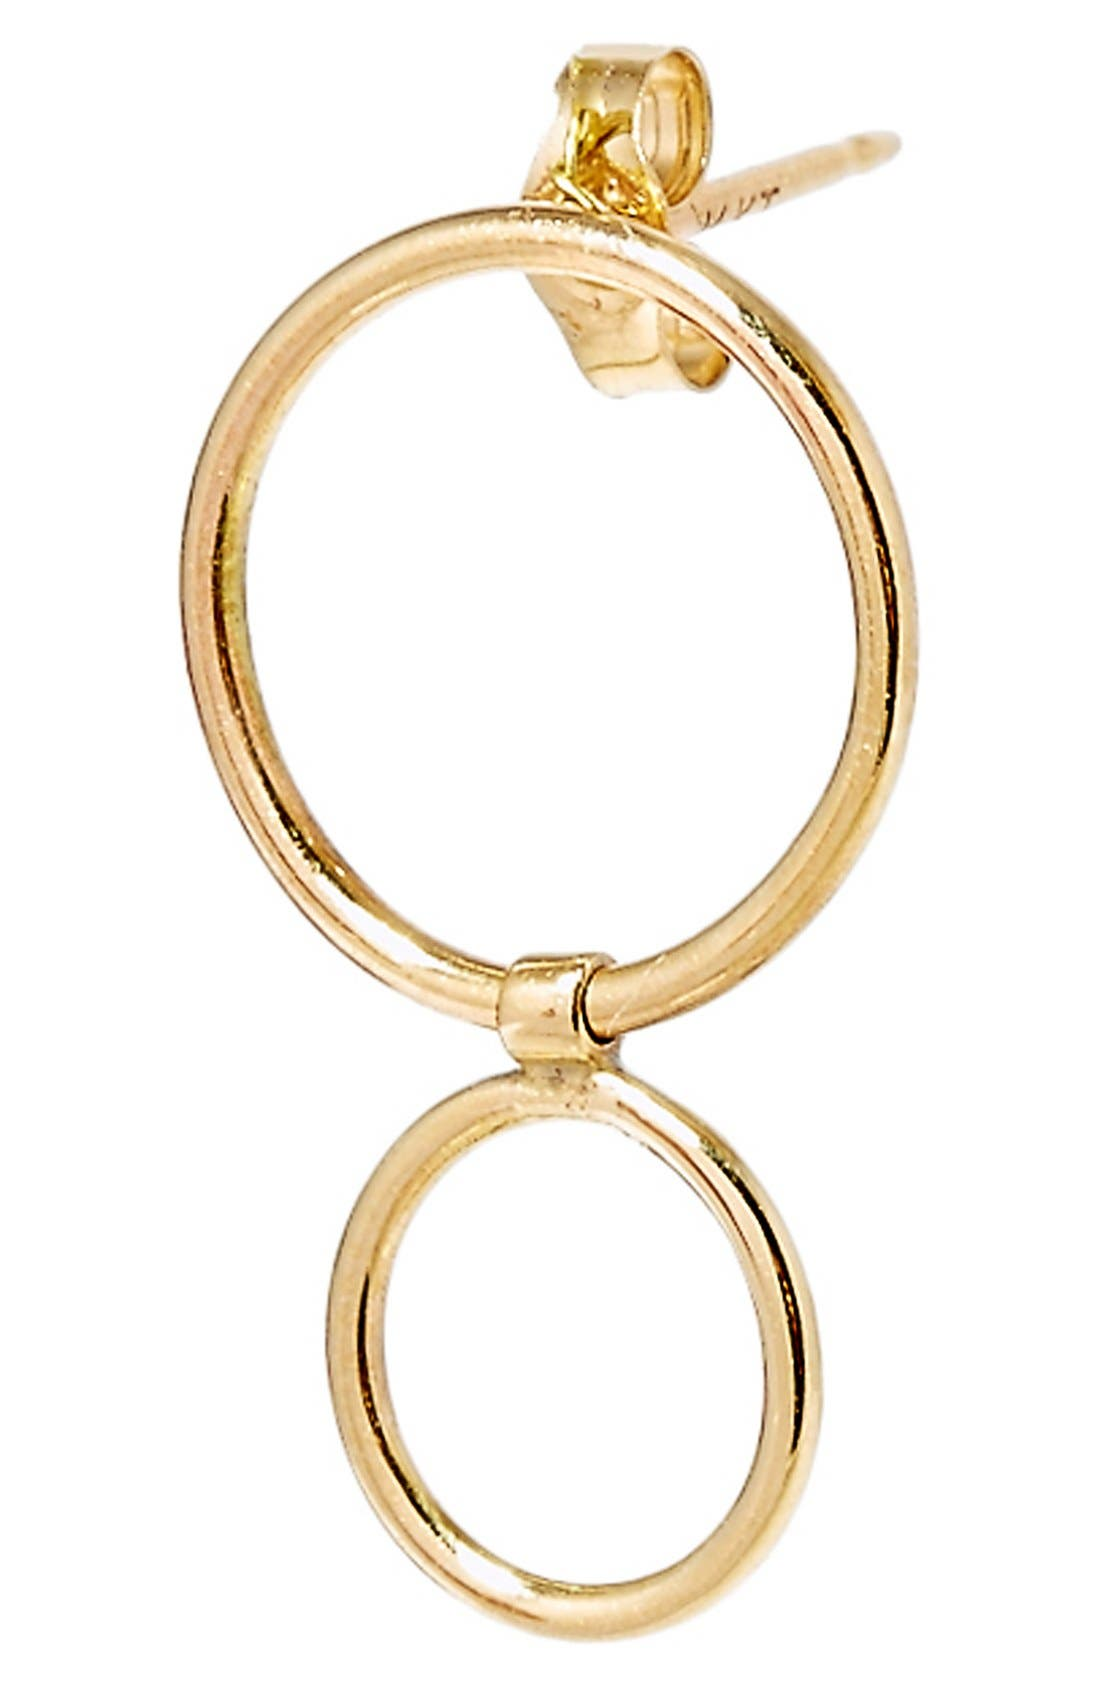 SARAH & SEBASTIAN 'Two Bubble' Statement Earring